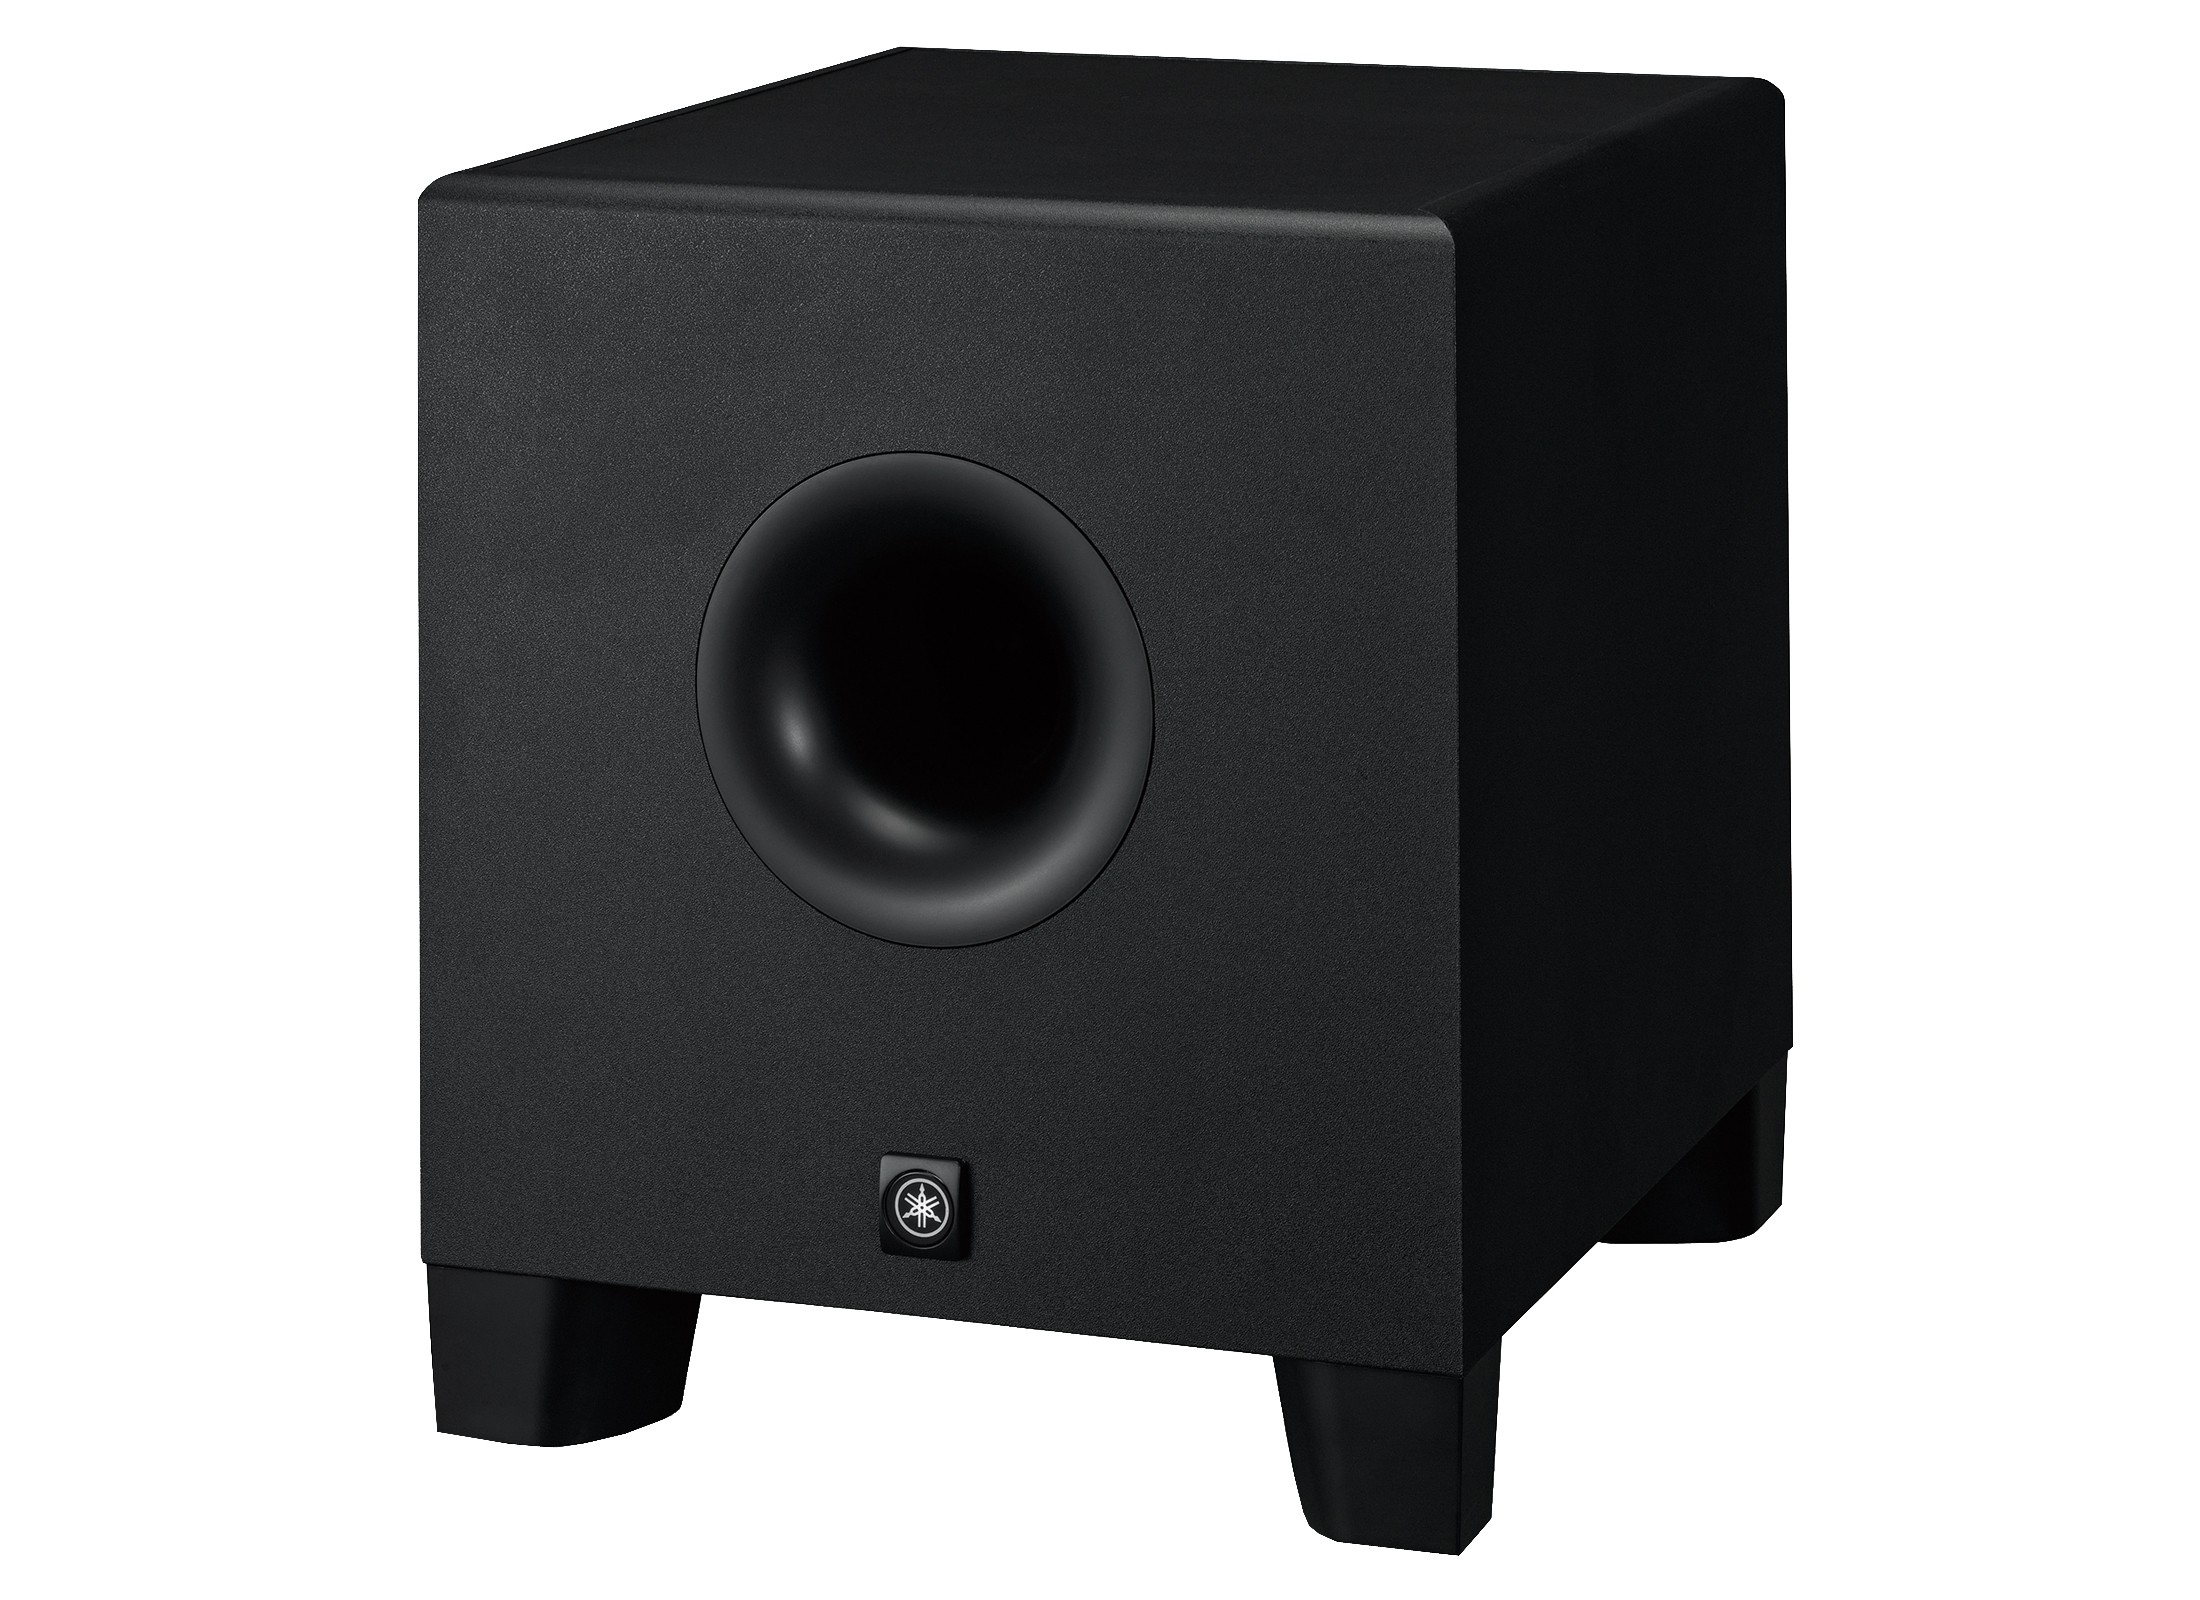 yamaha hs8s active studio subwoofer black online at low prices at huss light sound. Black Bedroom Furniture Sets. Home Design Ideas